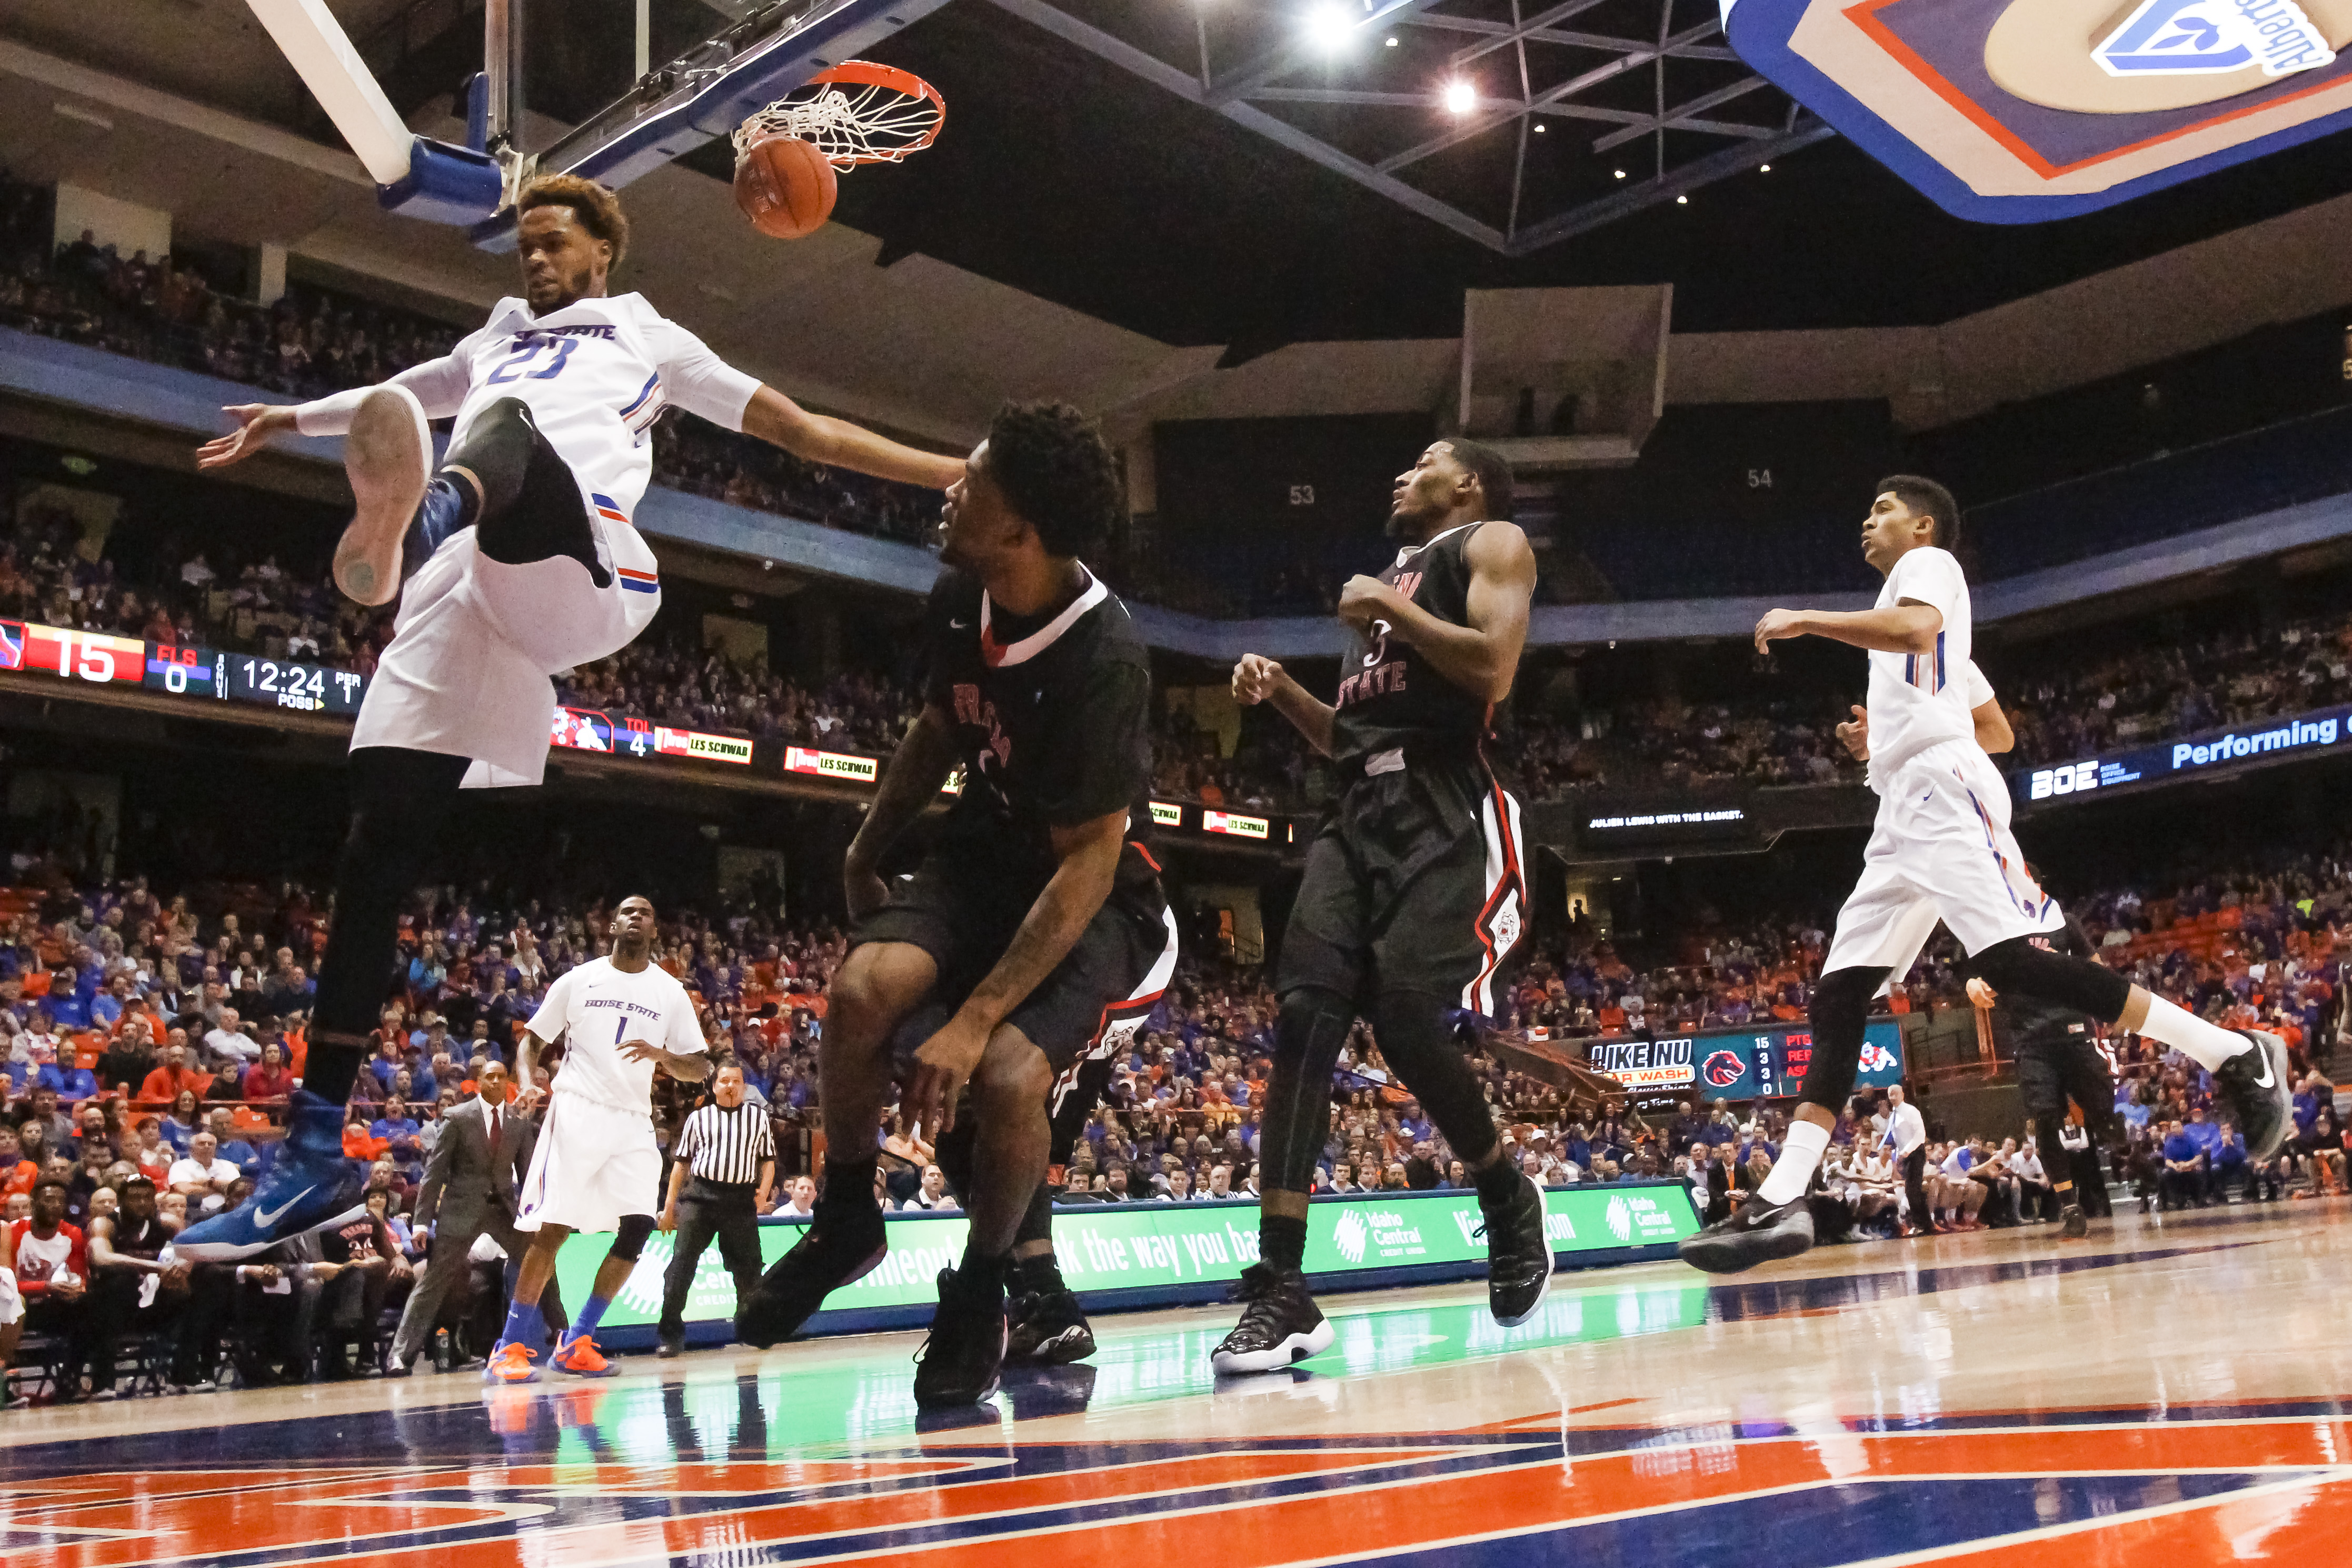 Boise State's James Webb III comes down from a dunk during the first half of an NCAA college basketball game against Fresno State in Boise, Idaho, on Saturday, Jan. 9, 2016. Boise State won 81-70. (AP Photo/Otto Kitsinger)